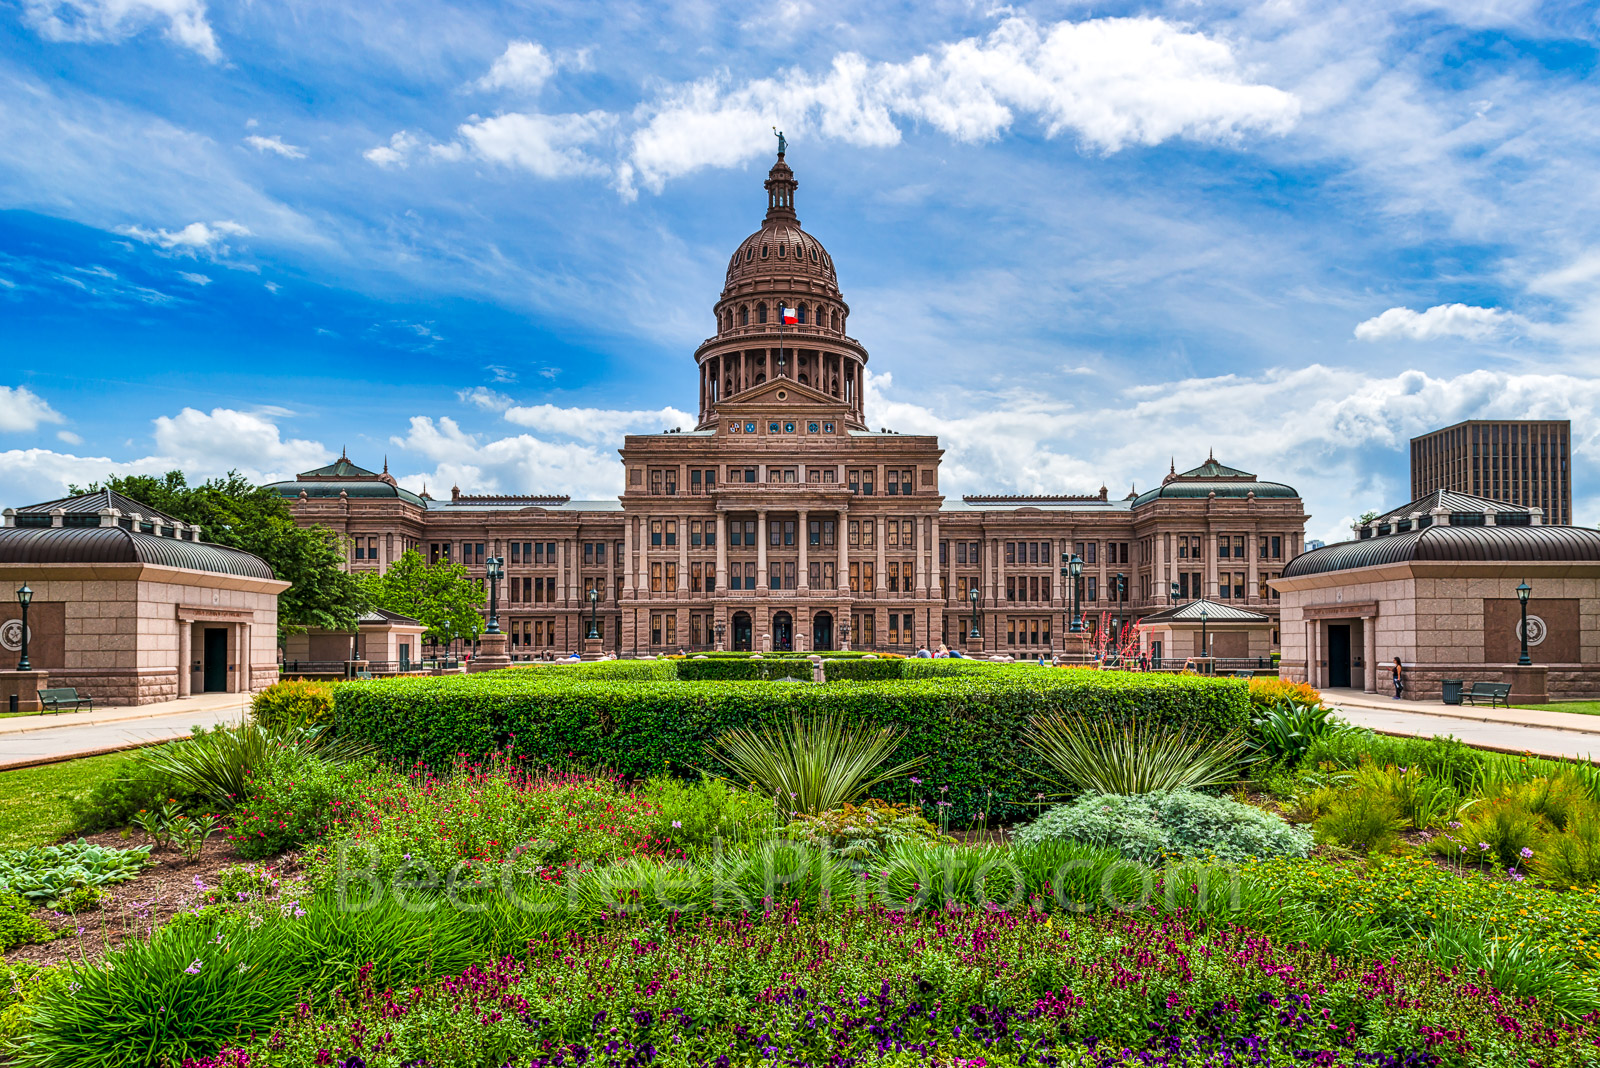 Austin, Texas State Capitol, day, garden, landscape, fine art, cityscape, downtown, city, State Capitol building, Texas State Capitol, state Capital, Capitol of Texas, tourist, history, historic, tree, photo